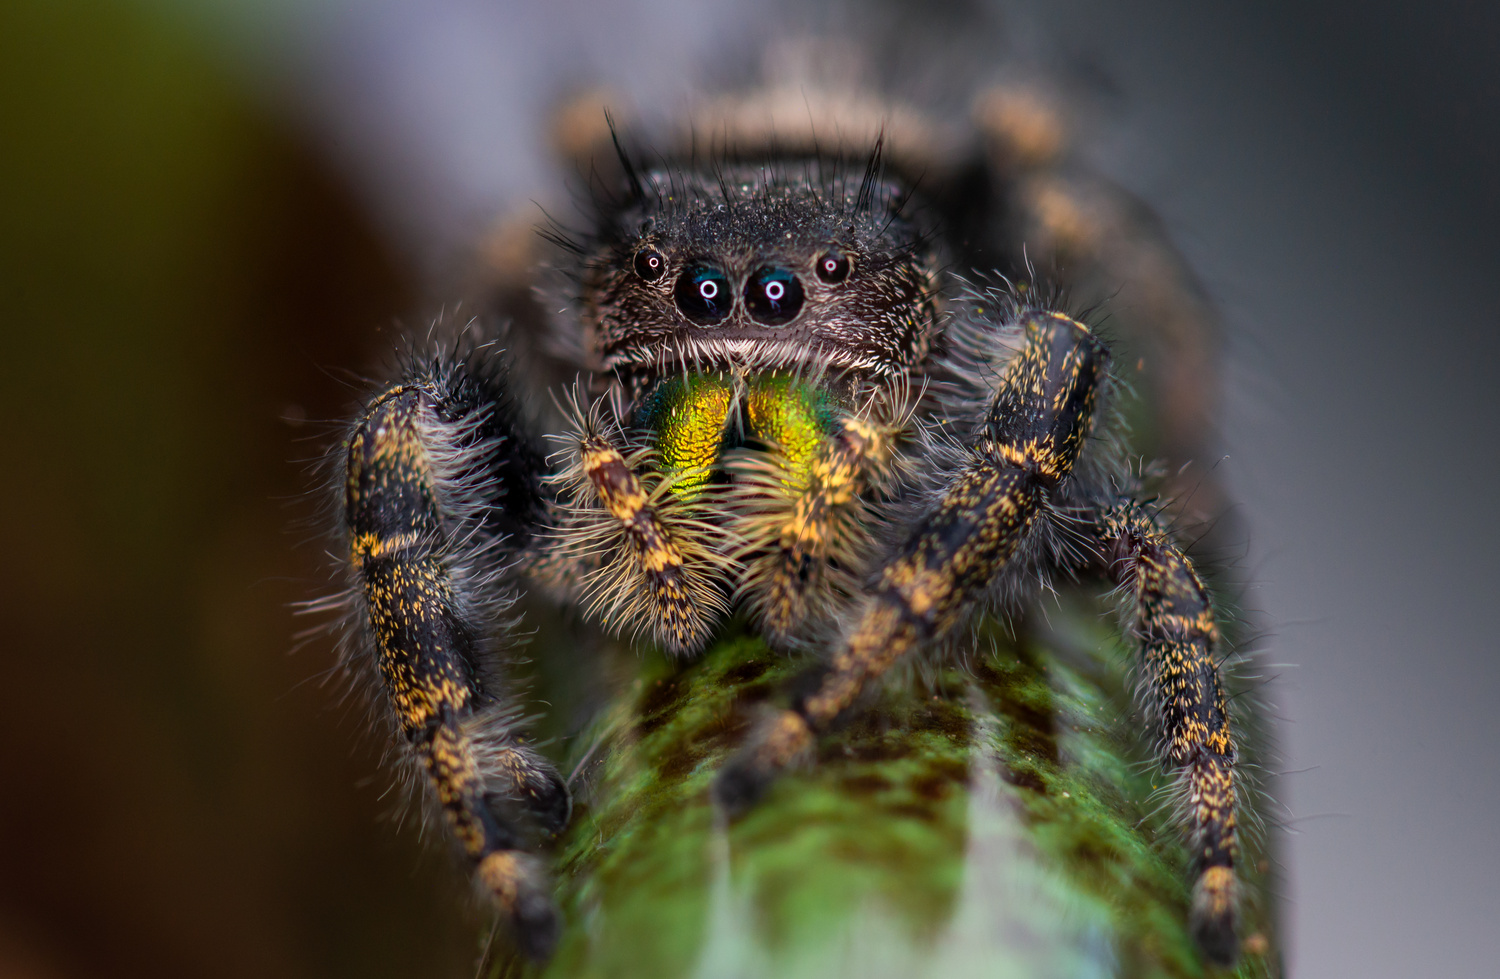 Jumping Spider in the Yard by Ryan Rees